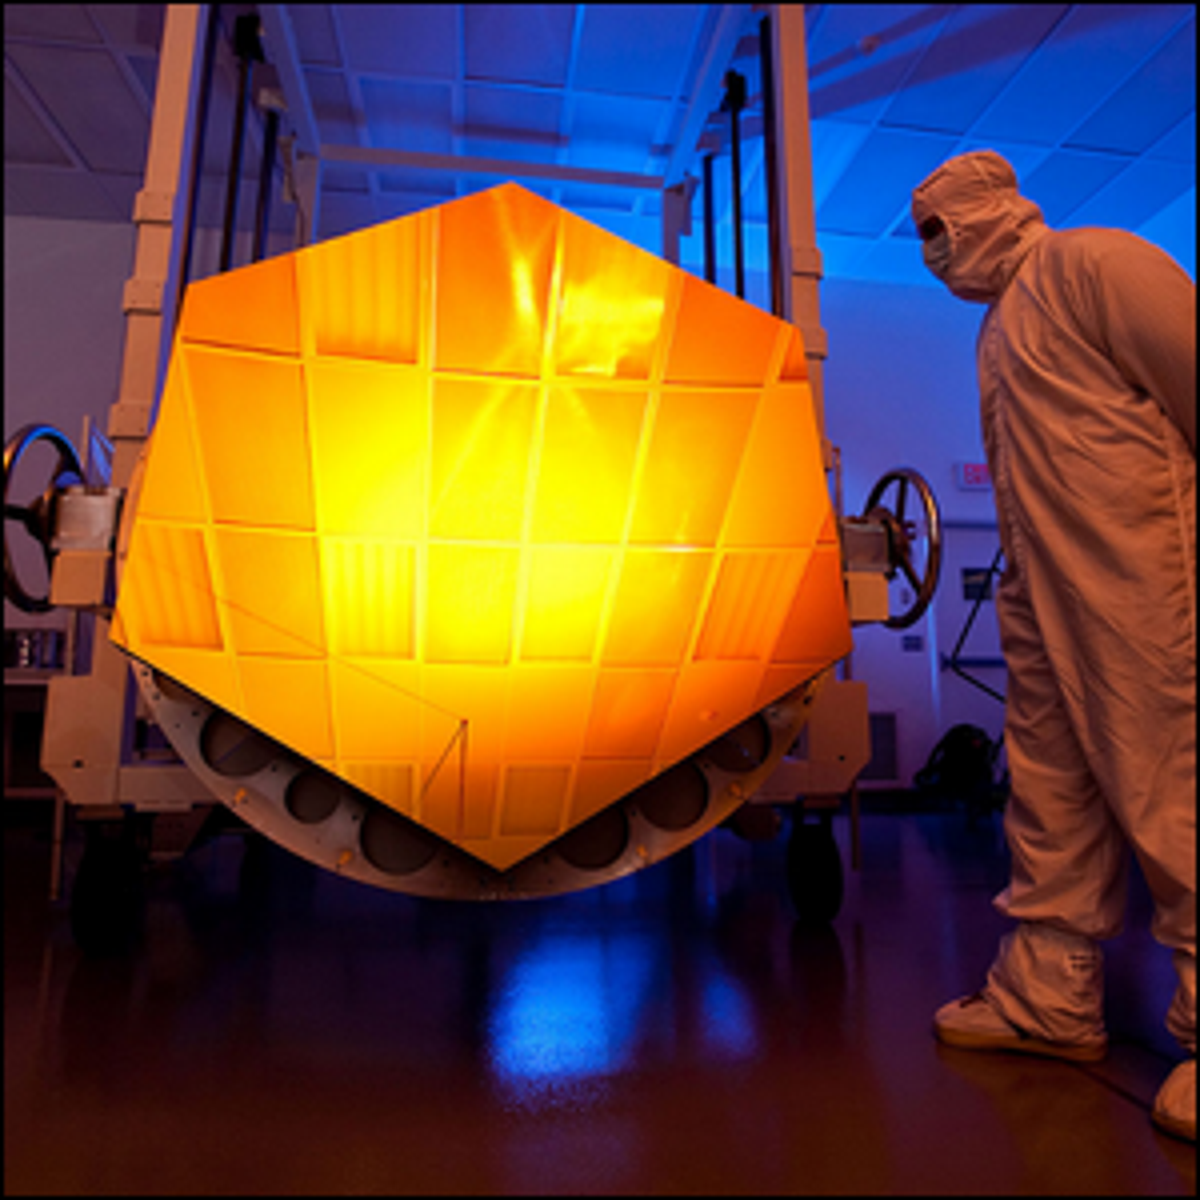 The James Webb Space Telescope's Engineering Design Unit (EDU) primary mirror segment, coated with gold.